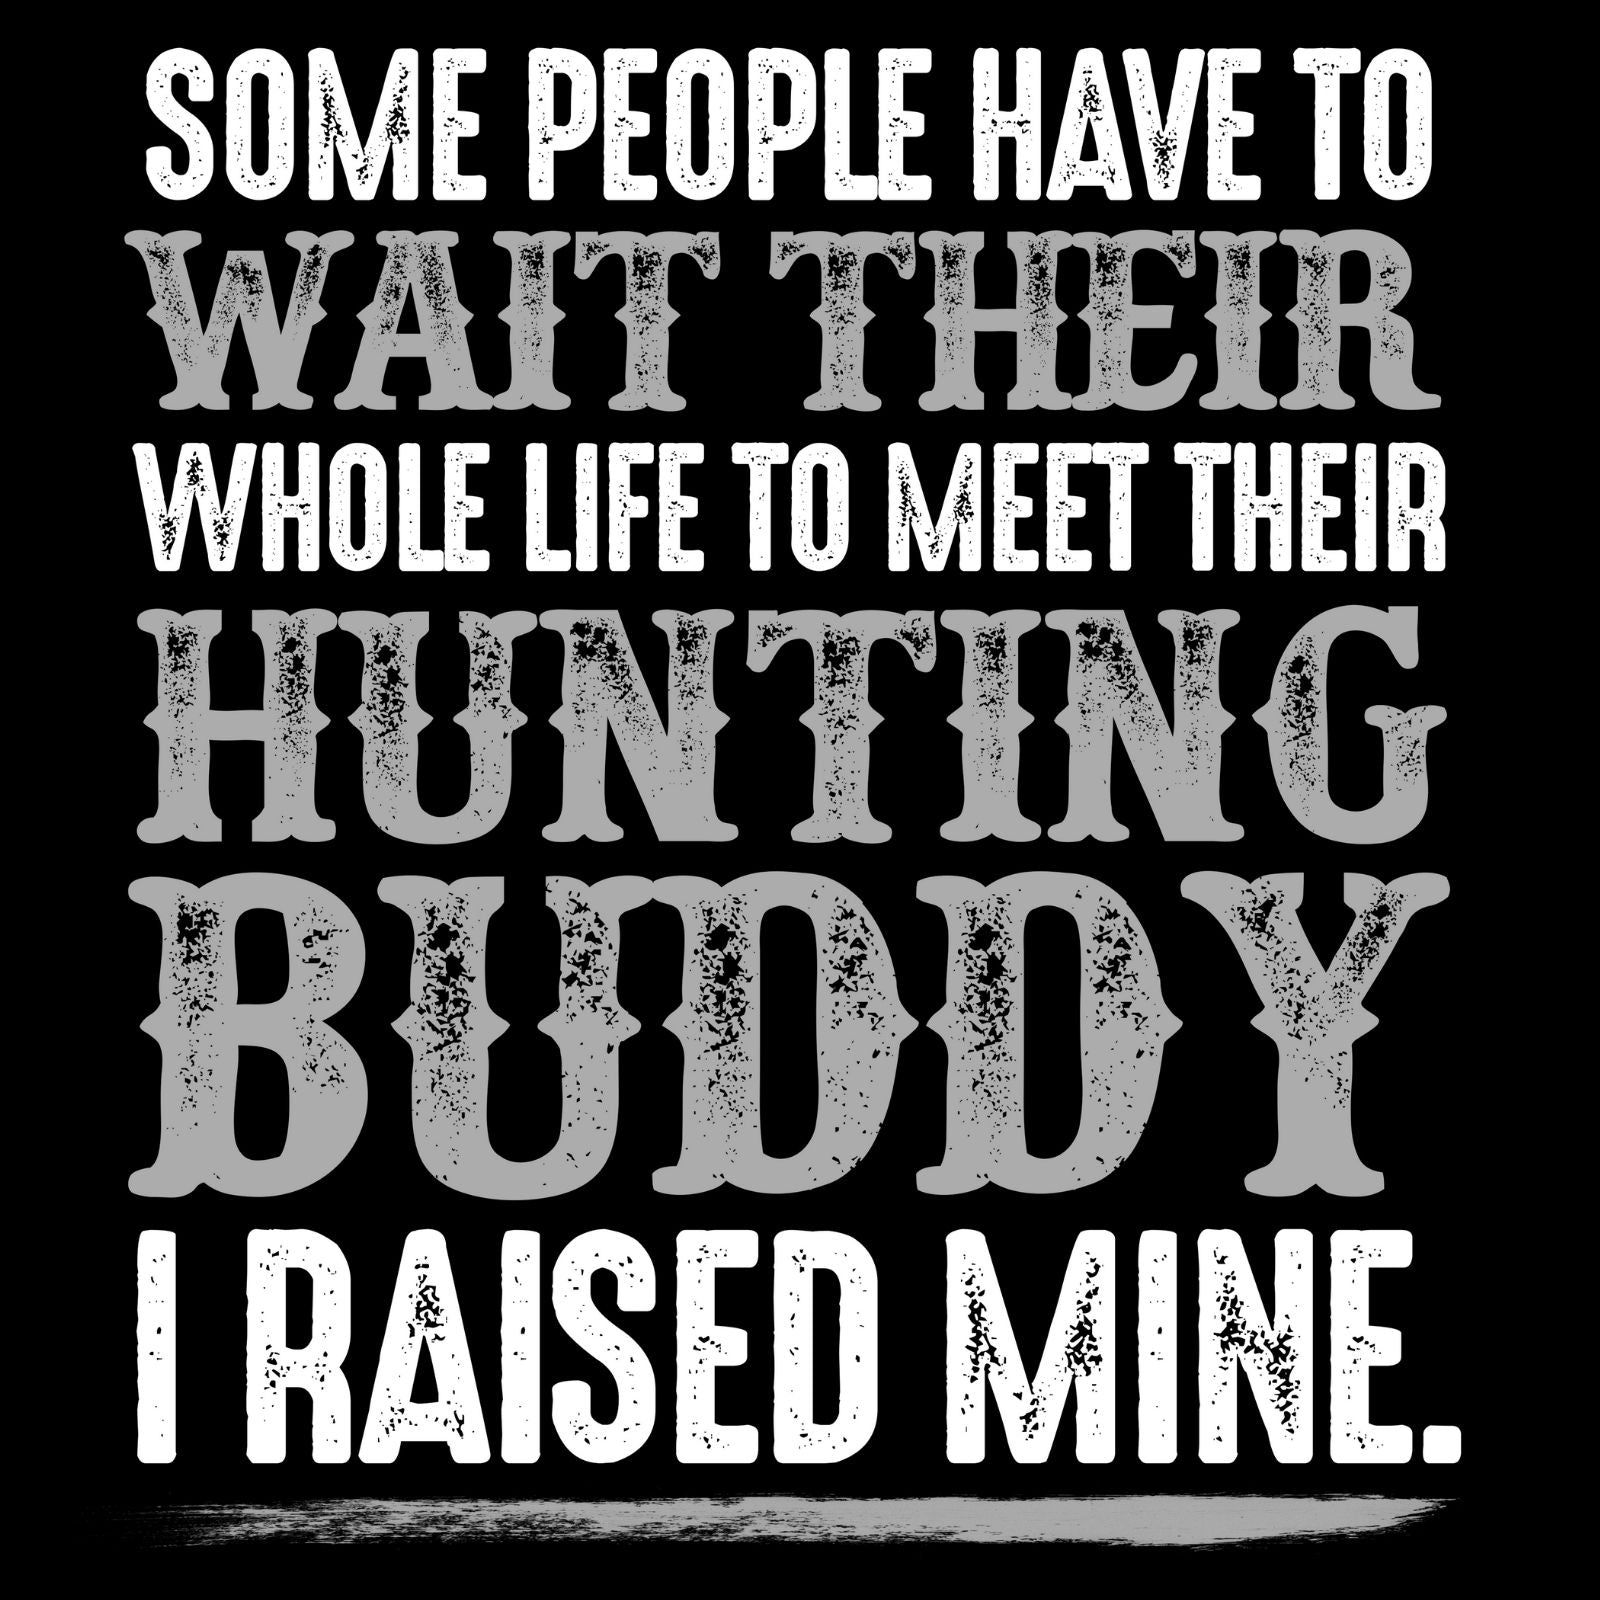 Some People Have To Wait Their Whole Life To Meet Their Hunting Buddy I Raised Mine - Bastard Graphics